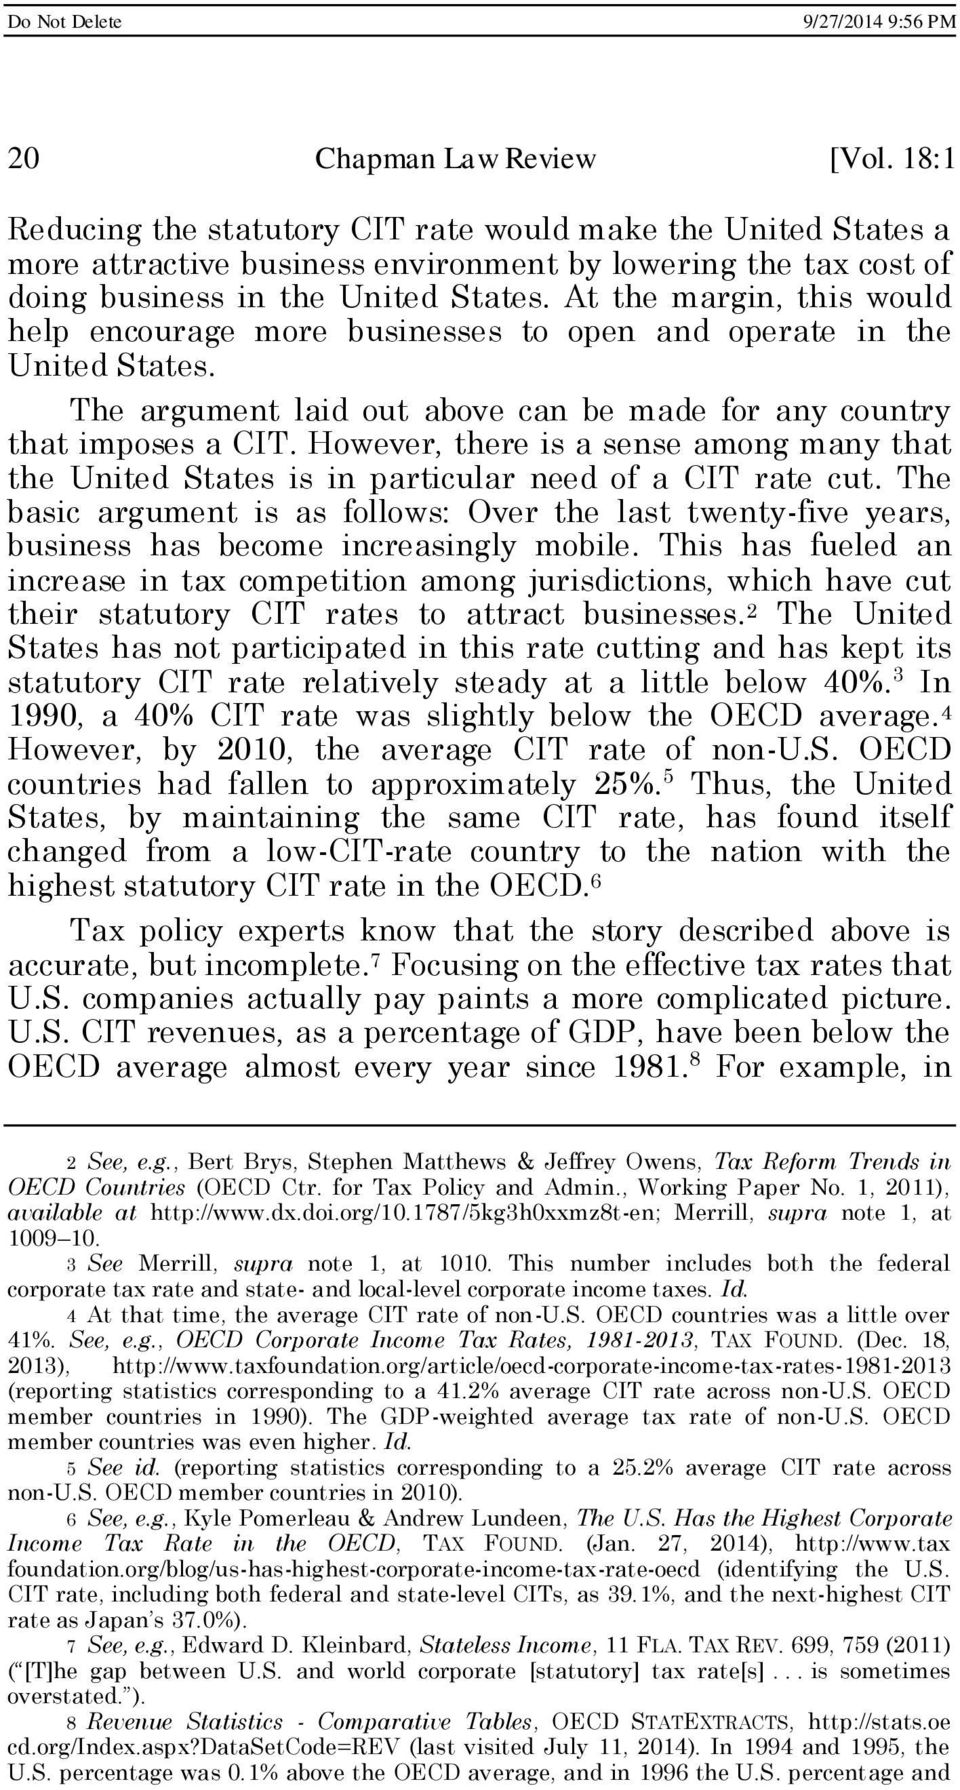 However, there is a sense among many that the United States is in particular need of a CIT rate cut.